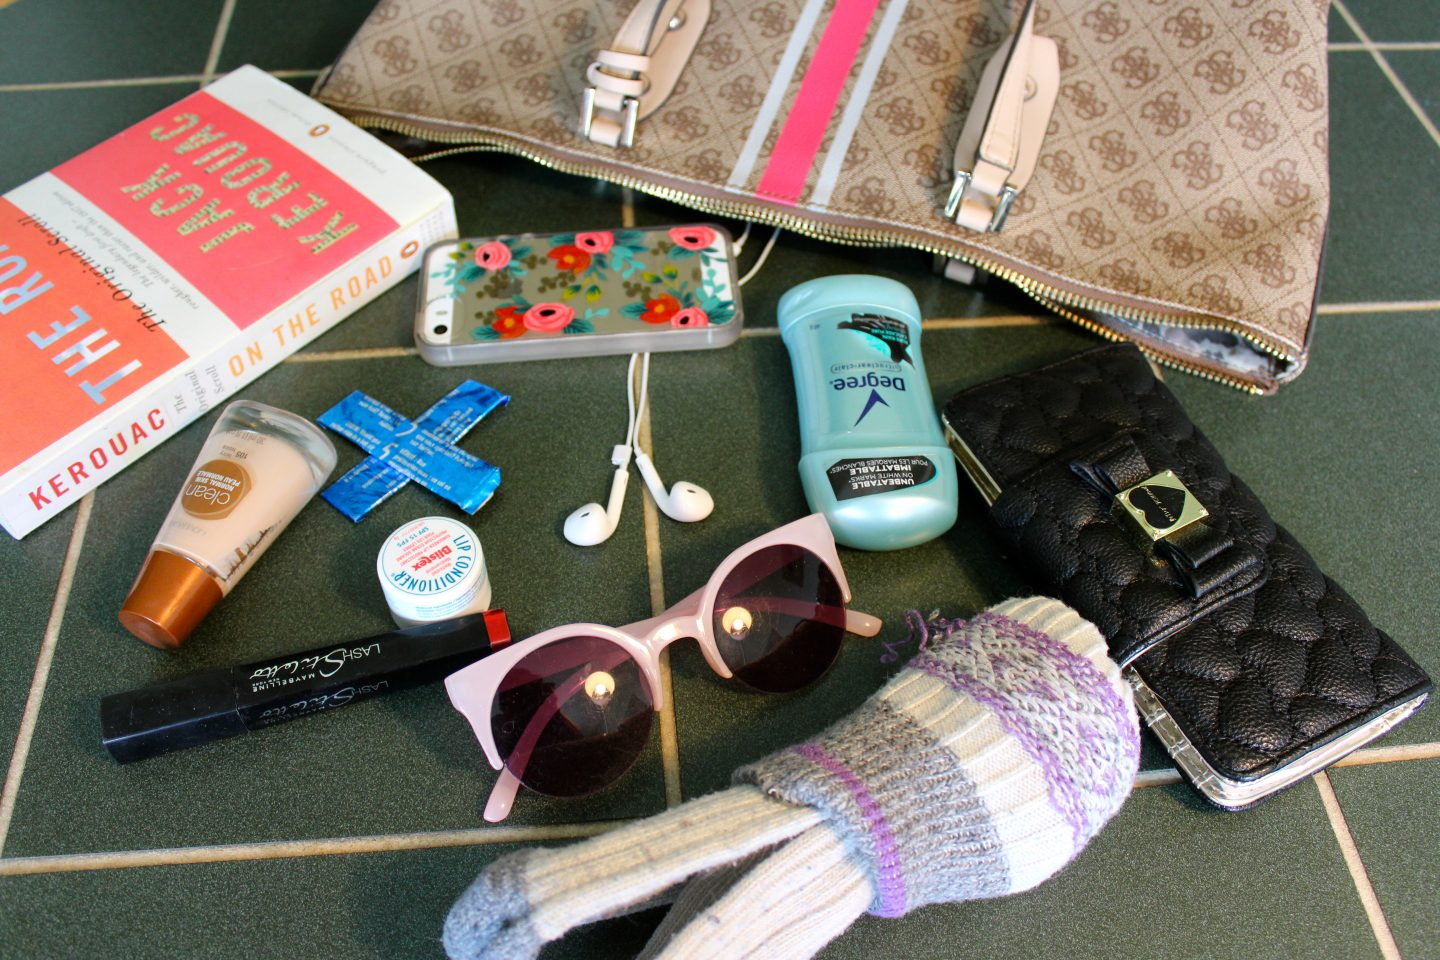 Wardrobe Wednesday: Travel edition